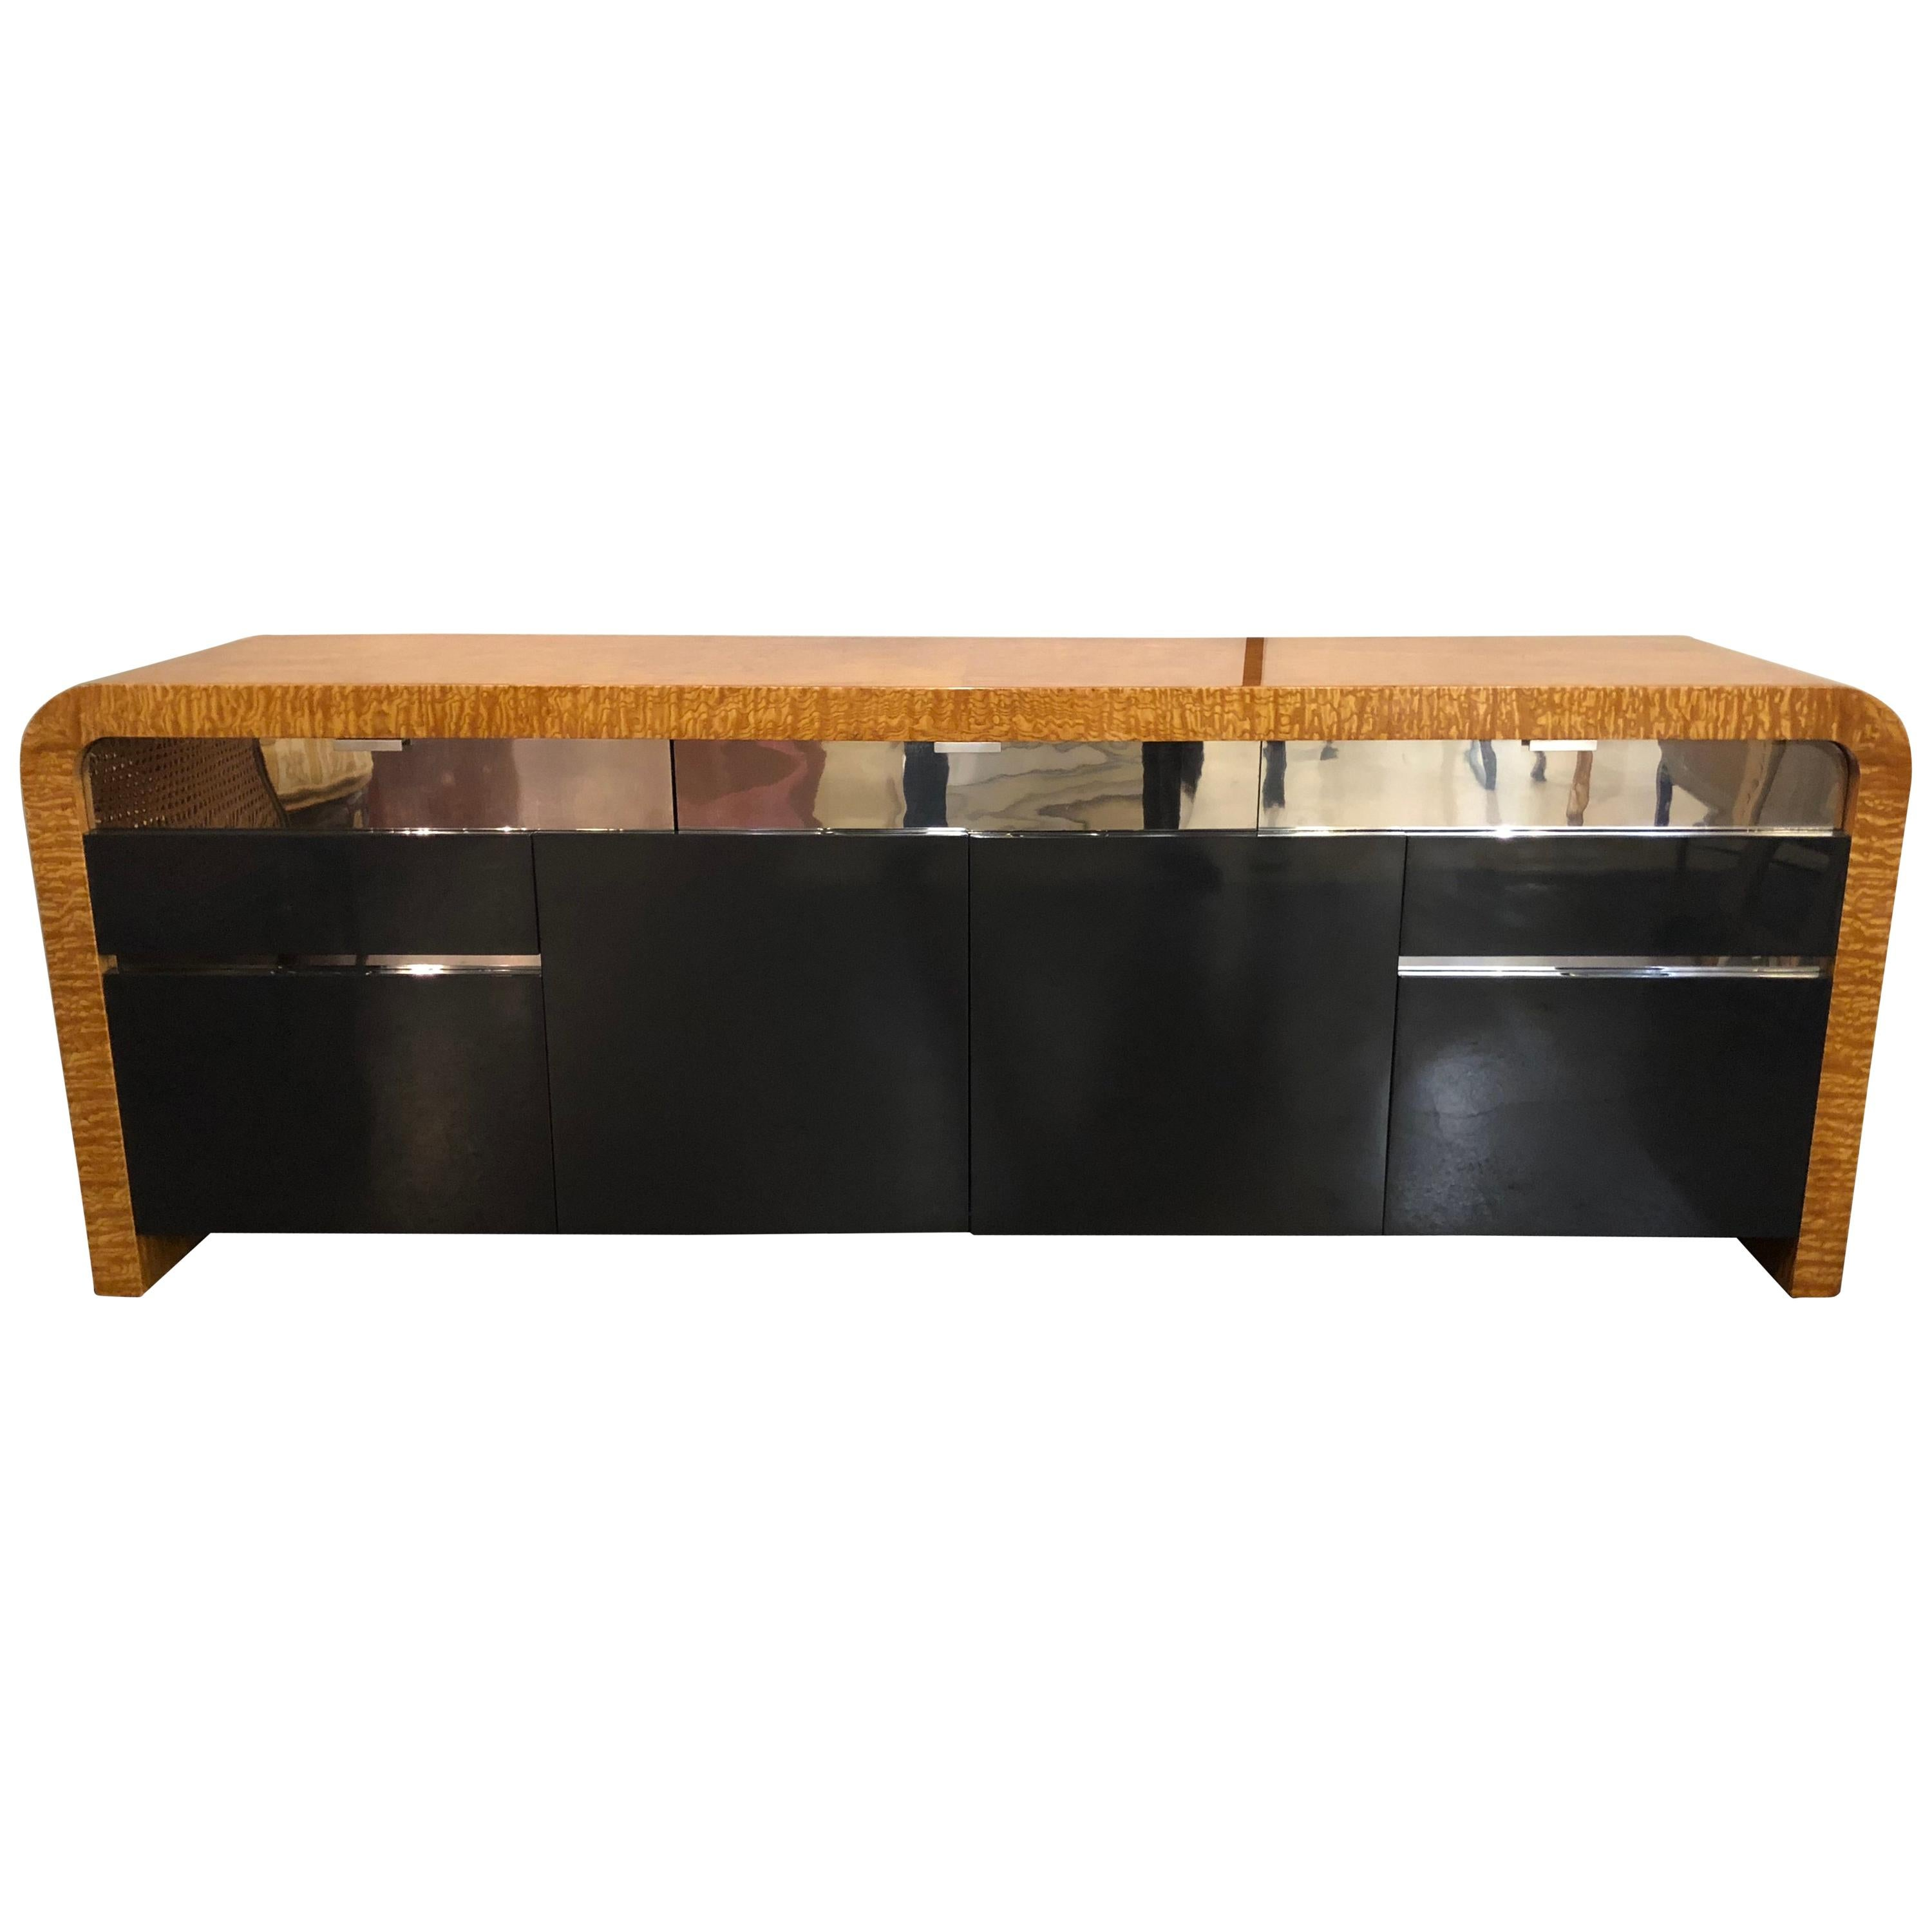 Vladimir Kagan Burl Wood and Lacquered Sideboard or Console with File Cabinets